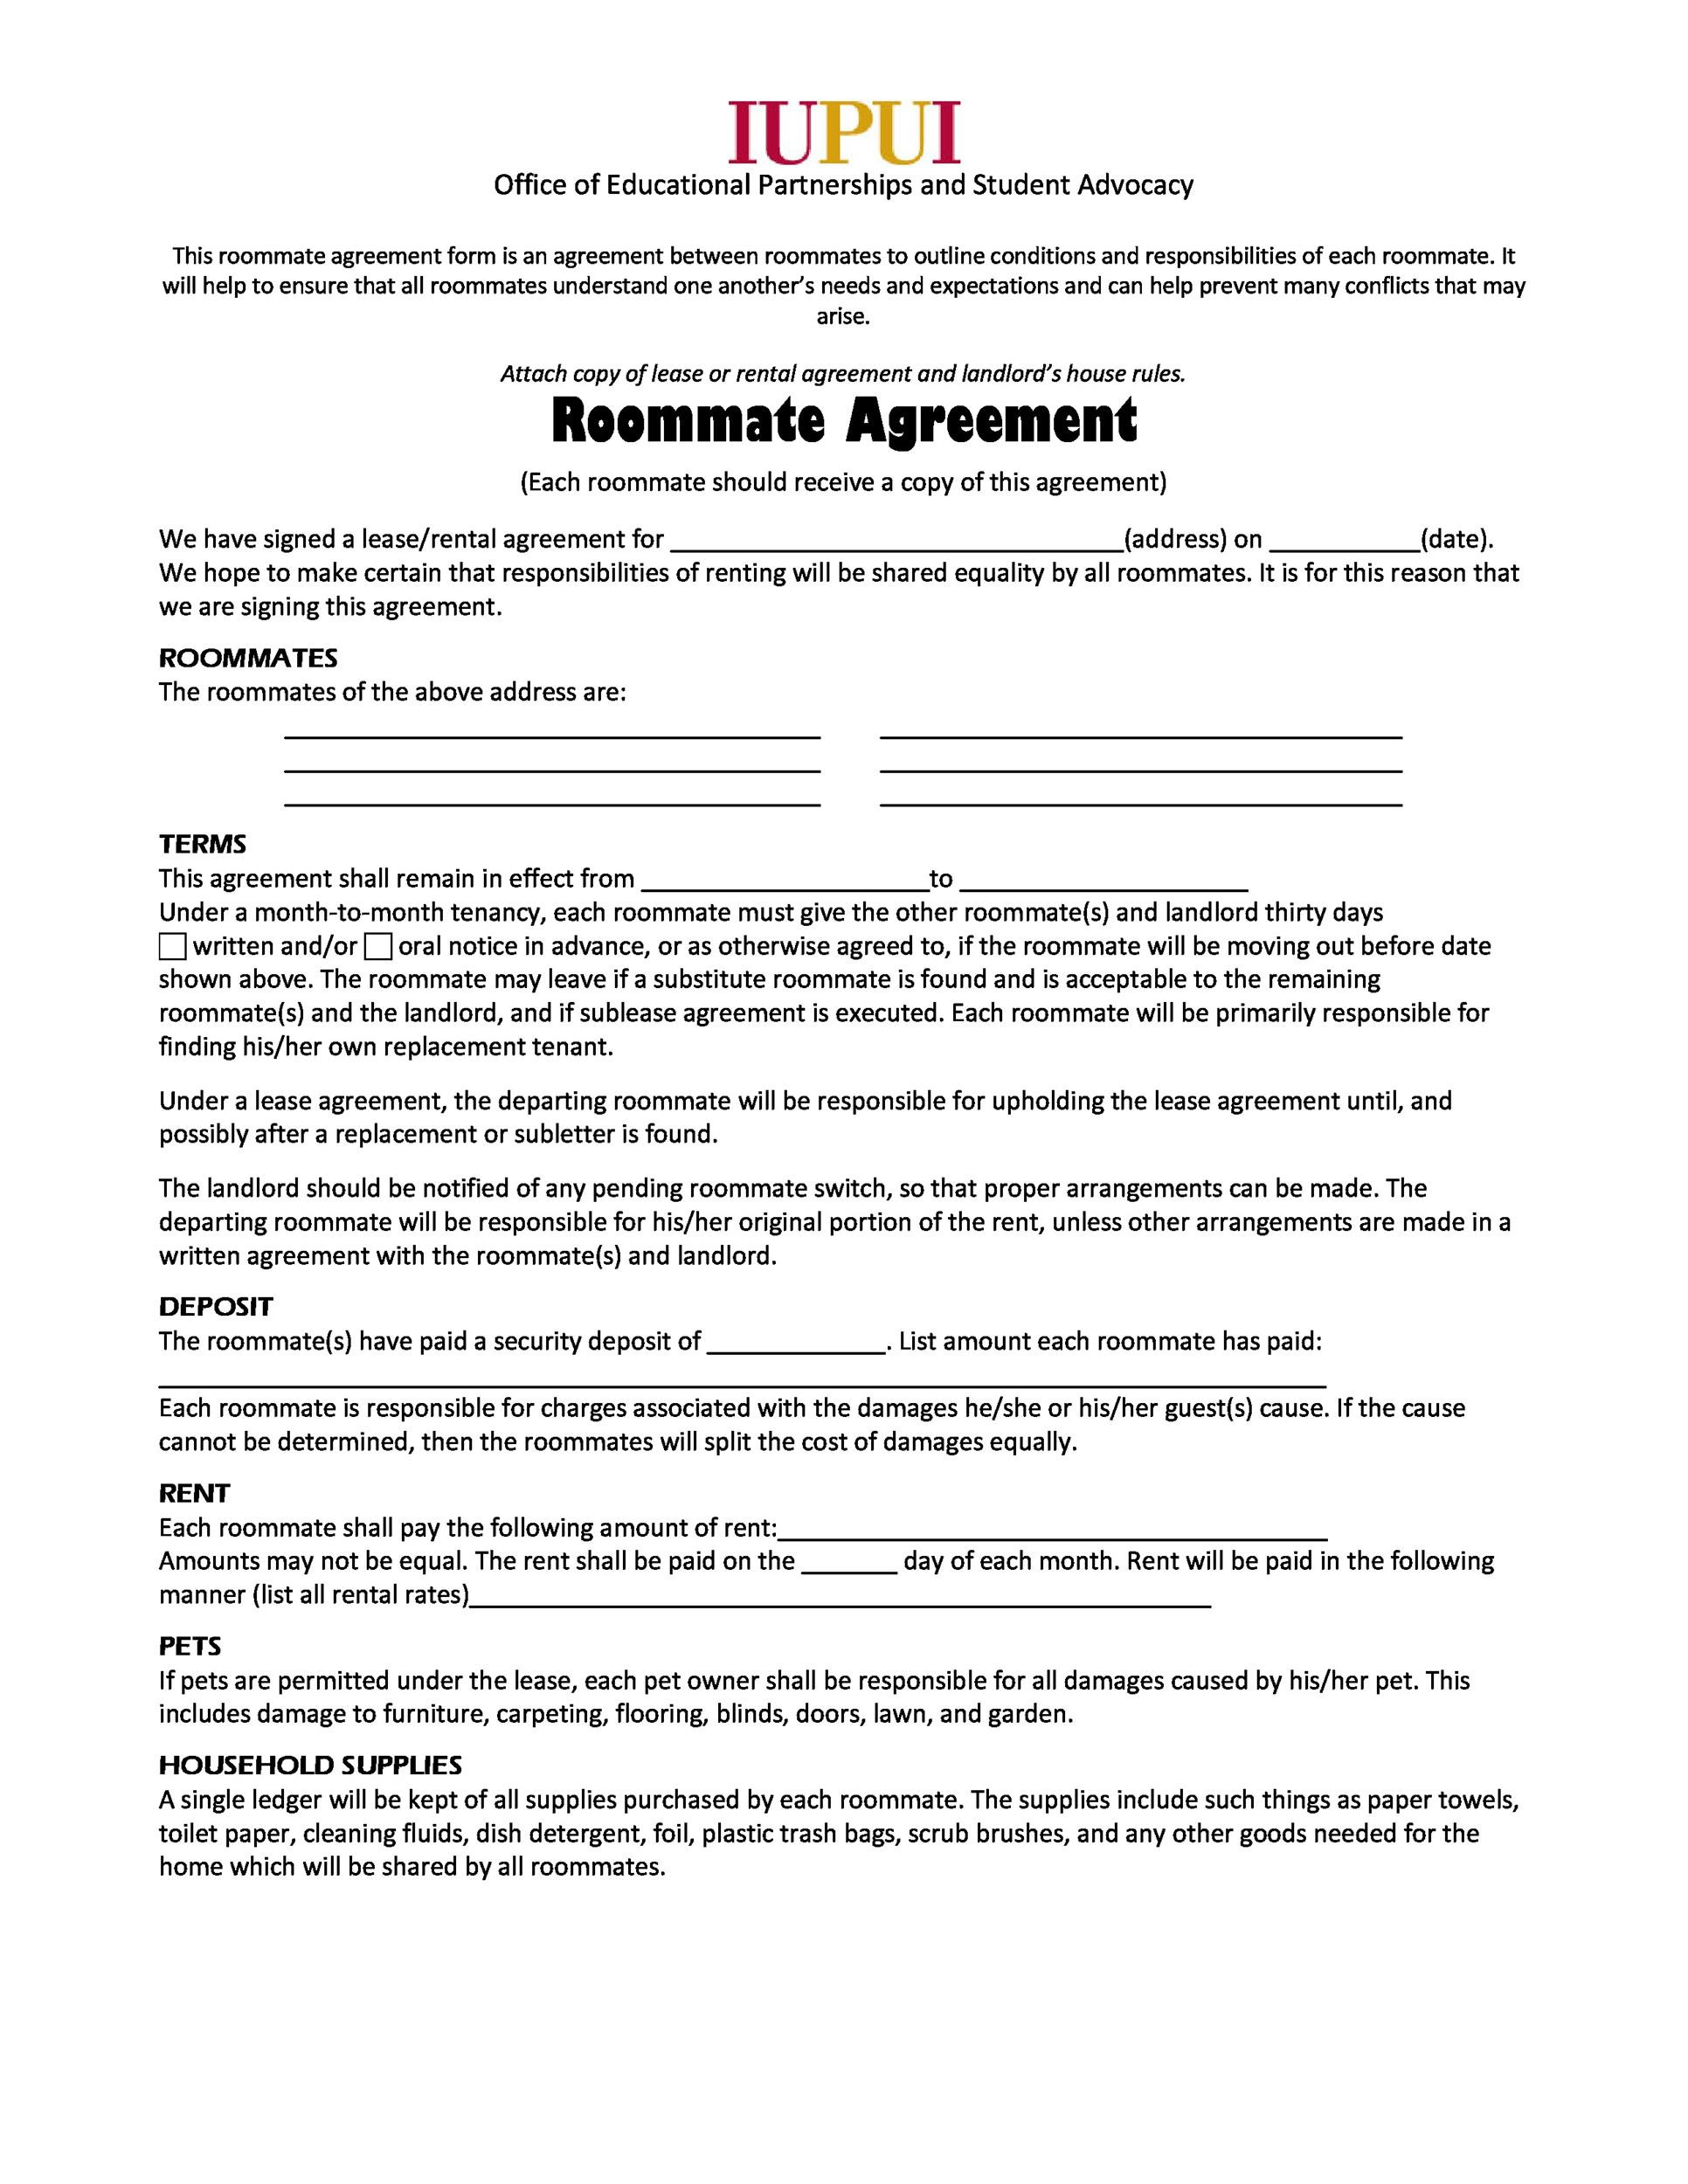 Living Agreement Contract Template